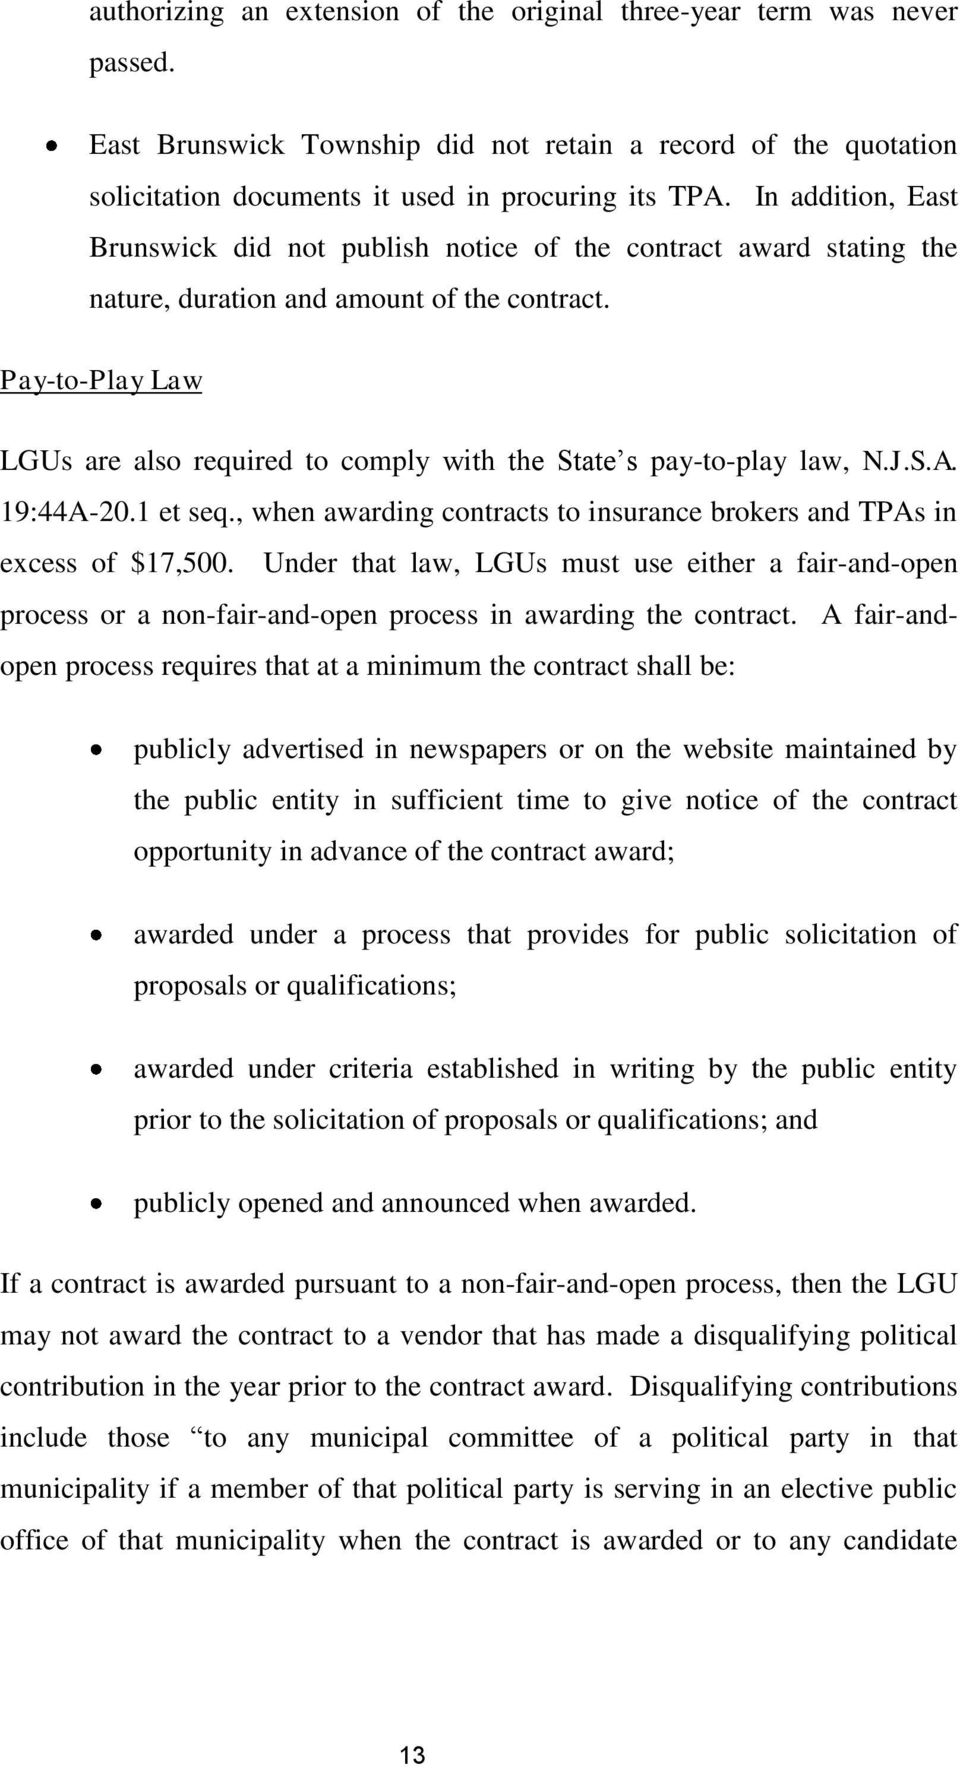 Pay-to-Play Law LGUs are also required to comply with the State s pay-to-play law, N.J.S.A. 19:44A-20.1 et seq., when awarding contracts to insurance brokers and TPAs in excess of $17,500.